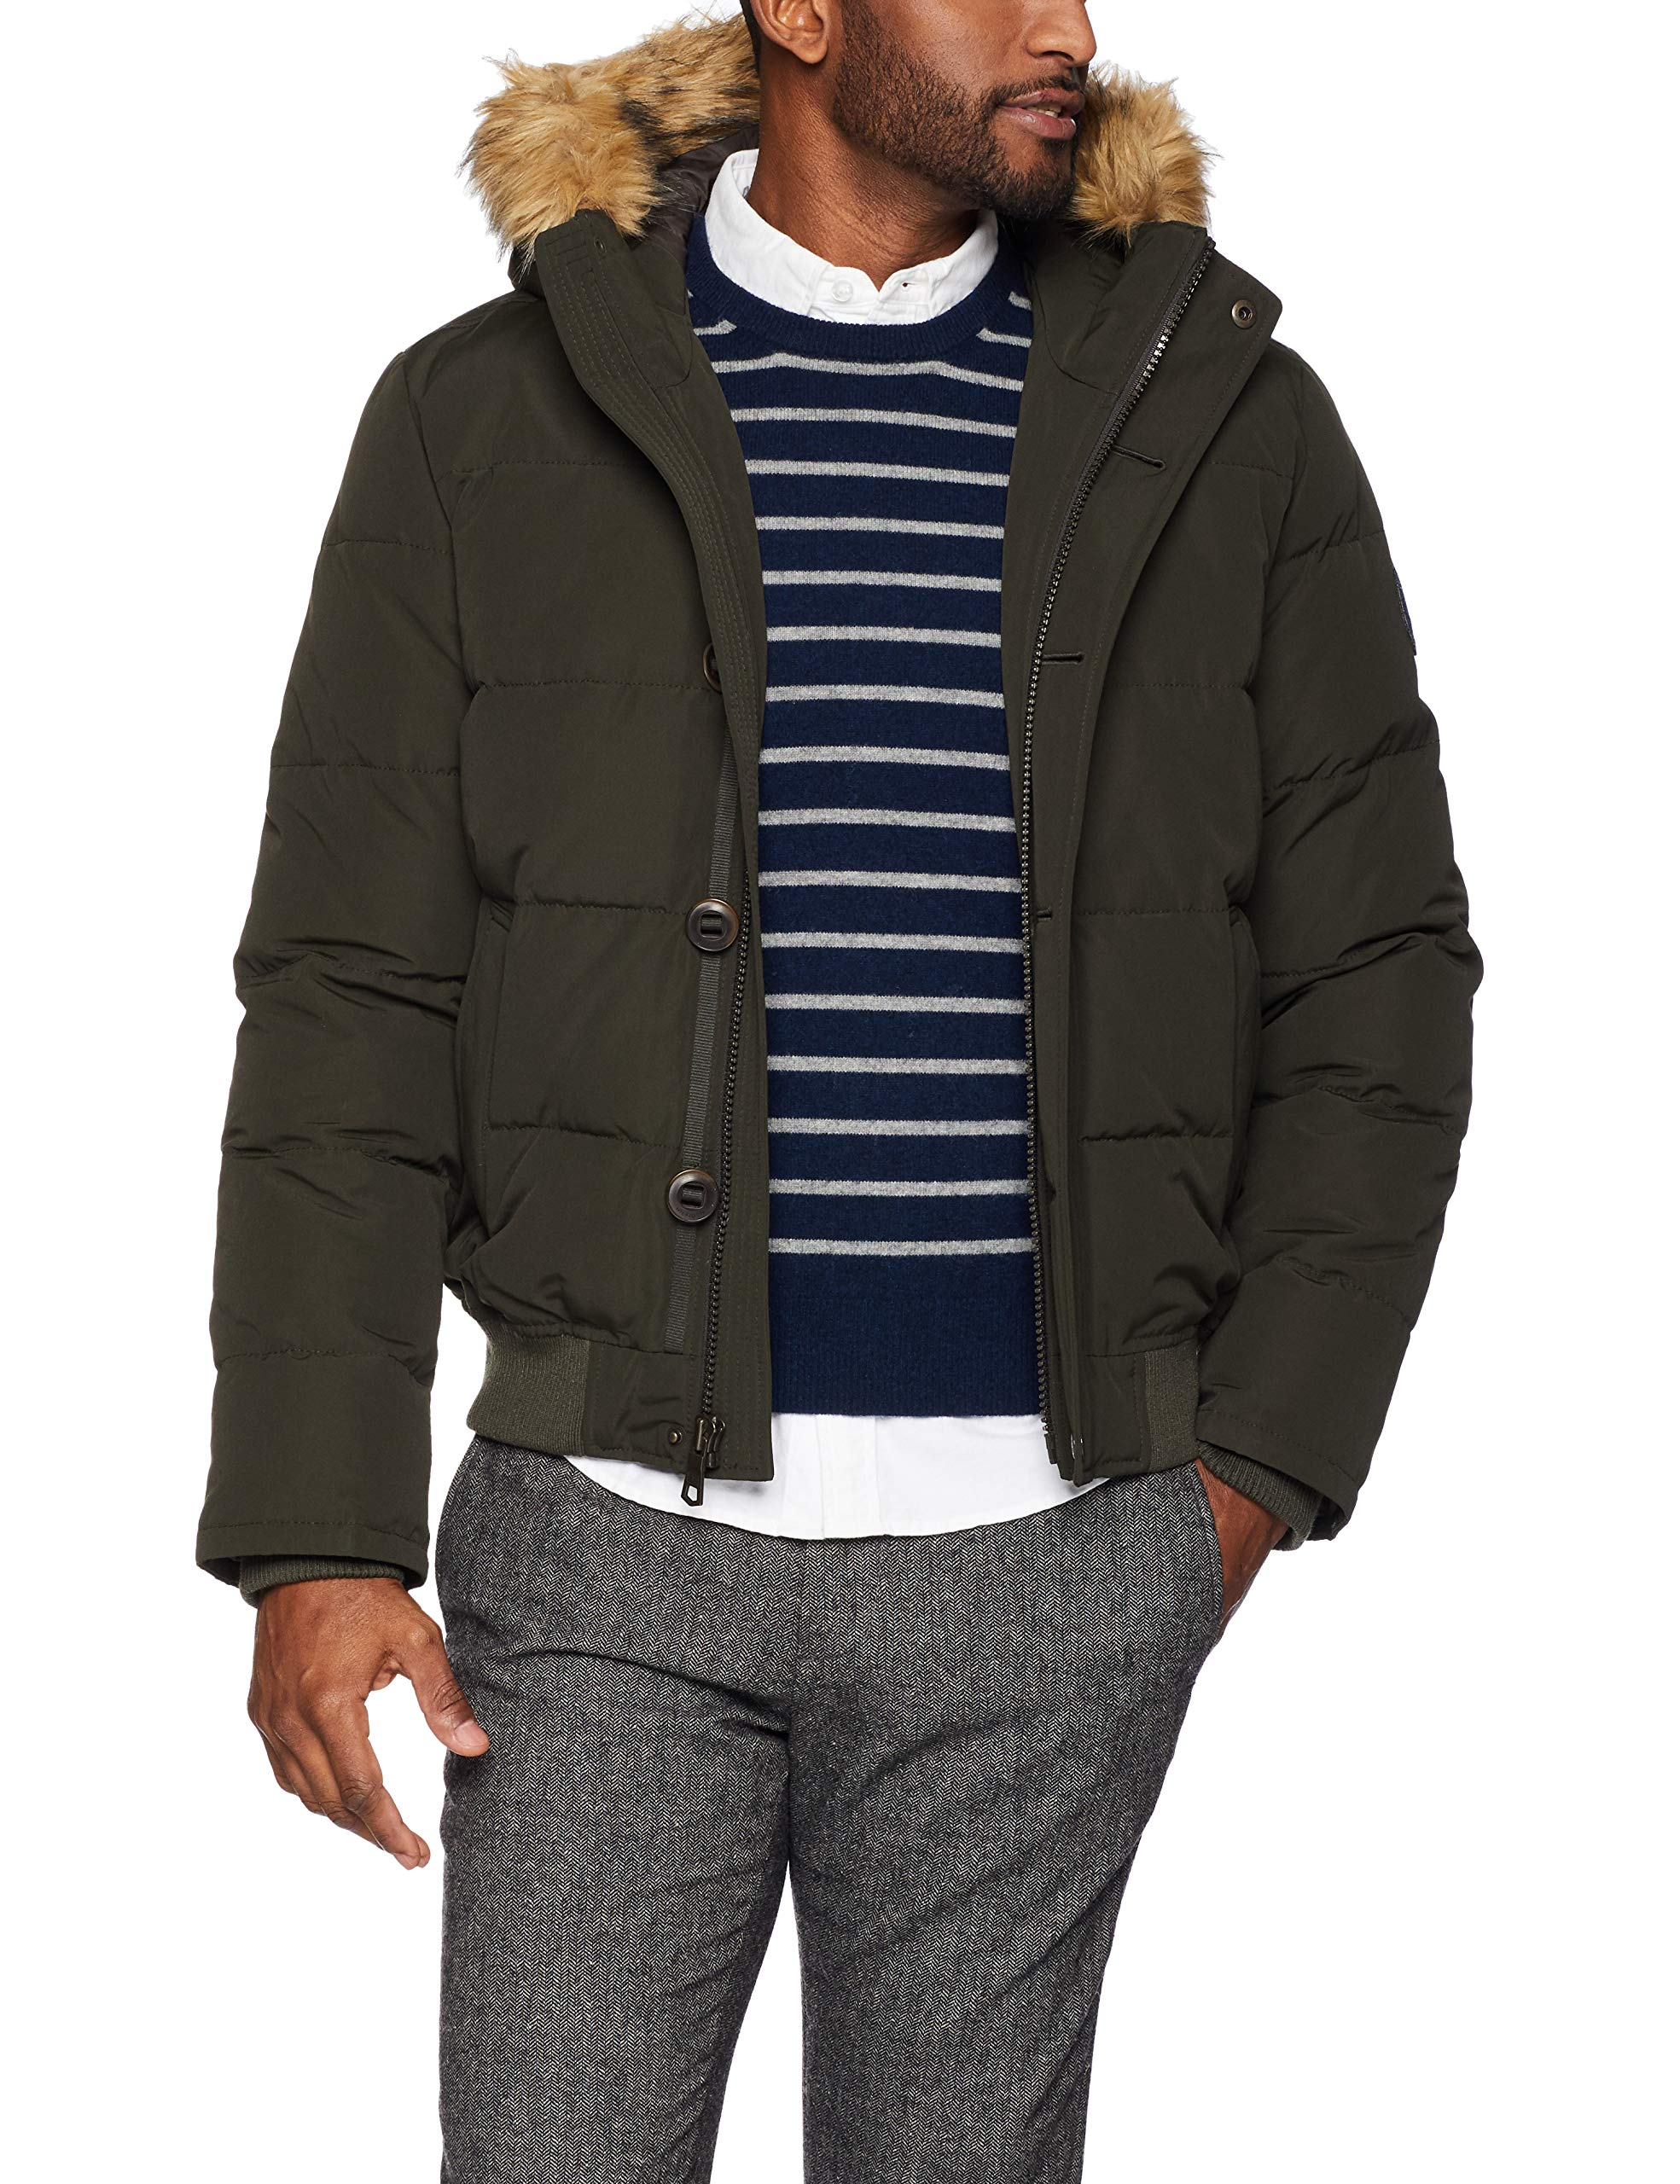 Tommy Hilfiger Men's Arctic Cloth Quilted Snorkel Bomber, dark forest, Large by Tommy Hilfiger